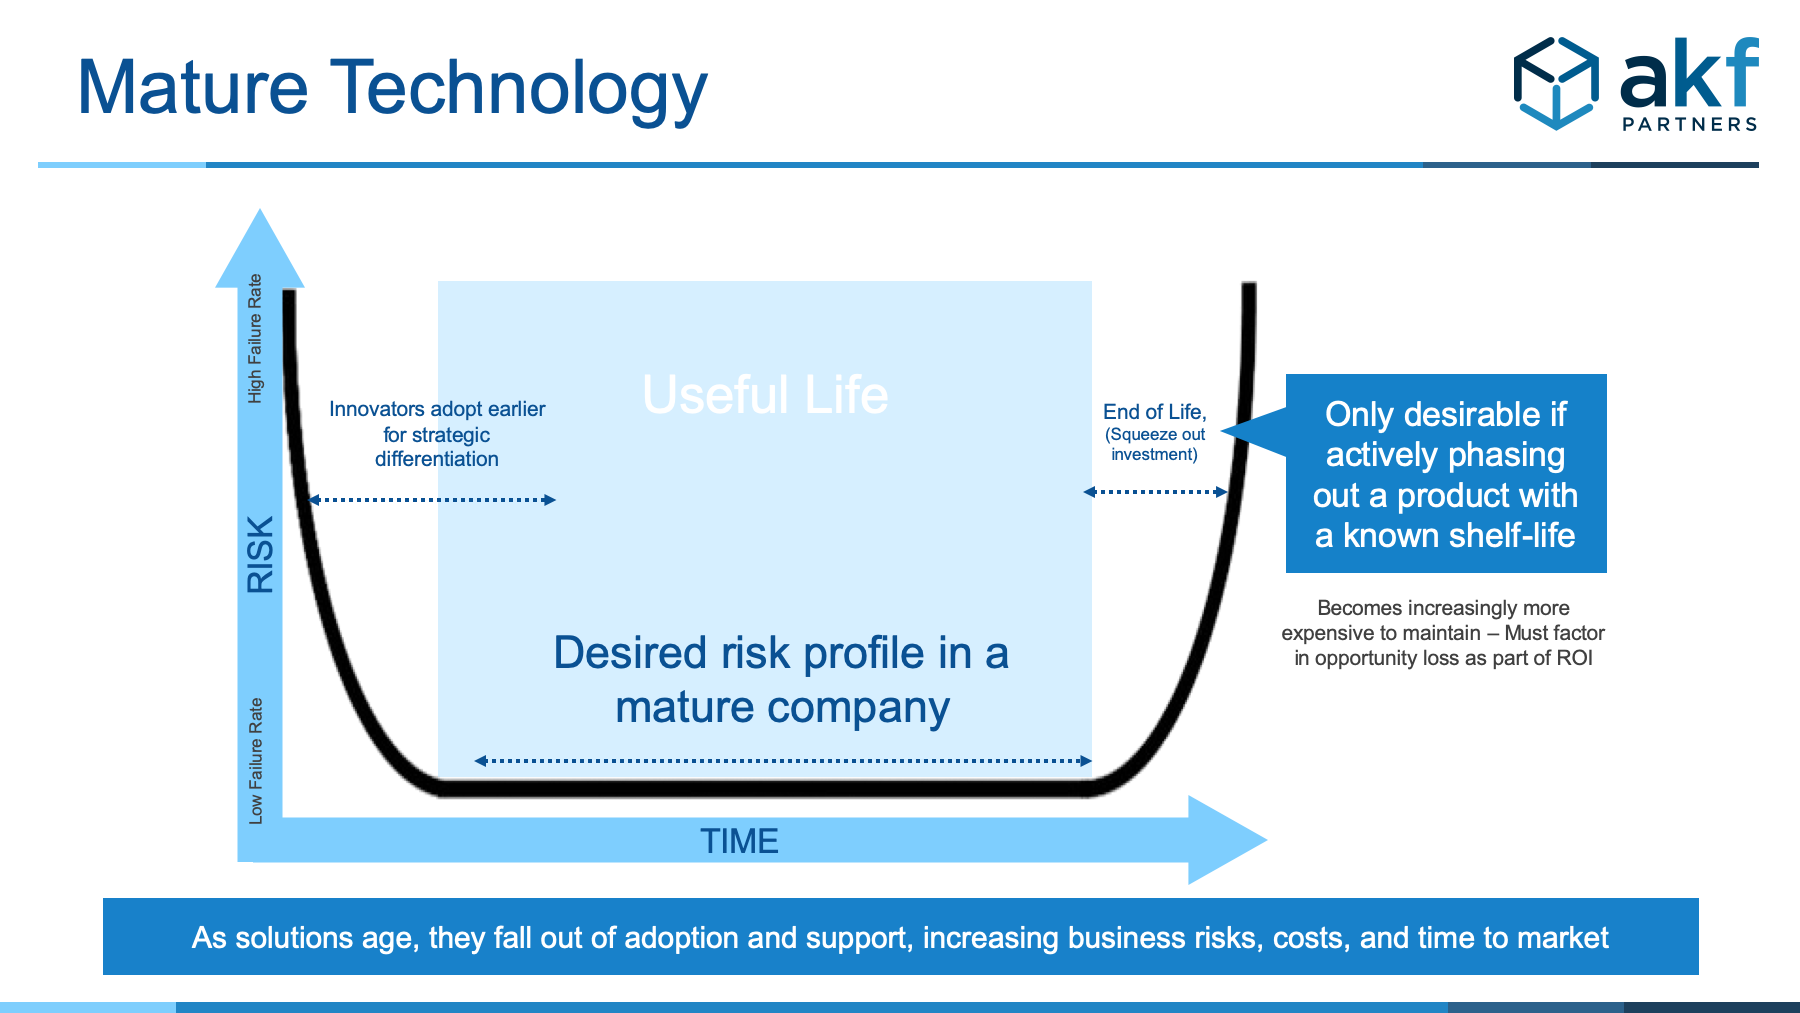 U-shaped or bathtub shaped graph showing that risk is highest when using new technology and antiquated technology